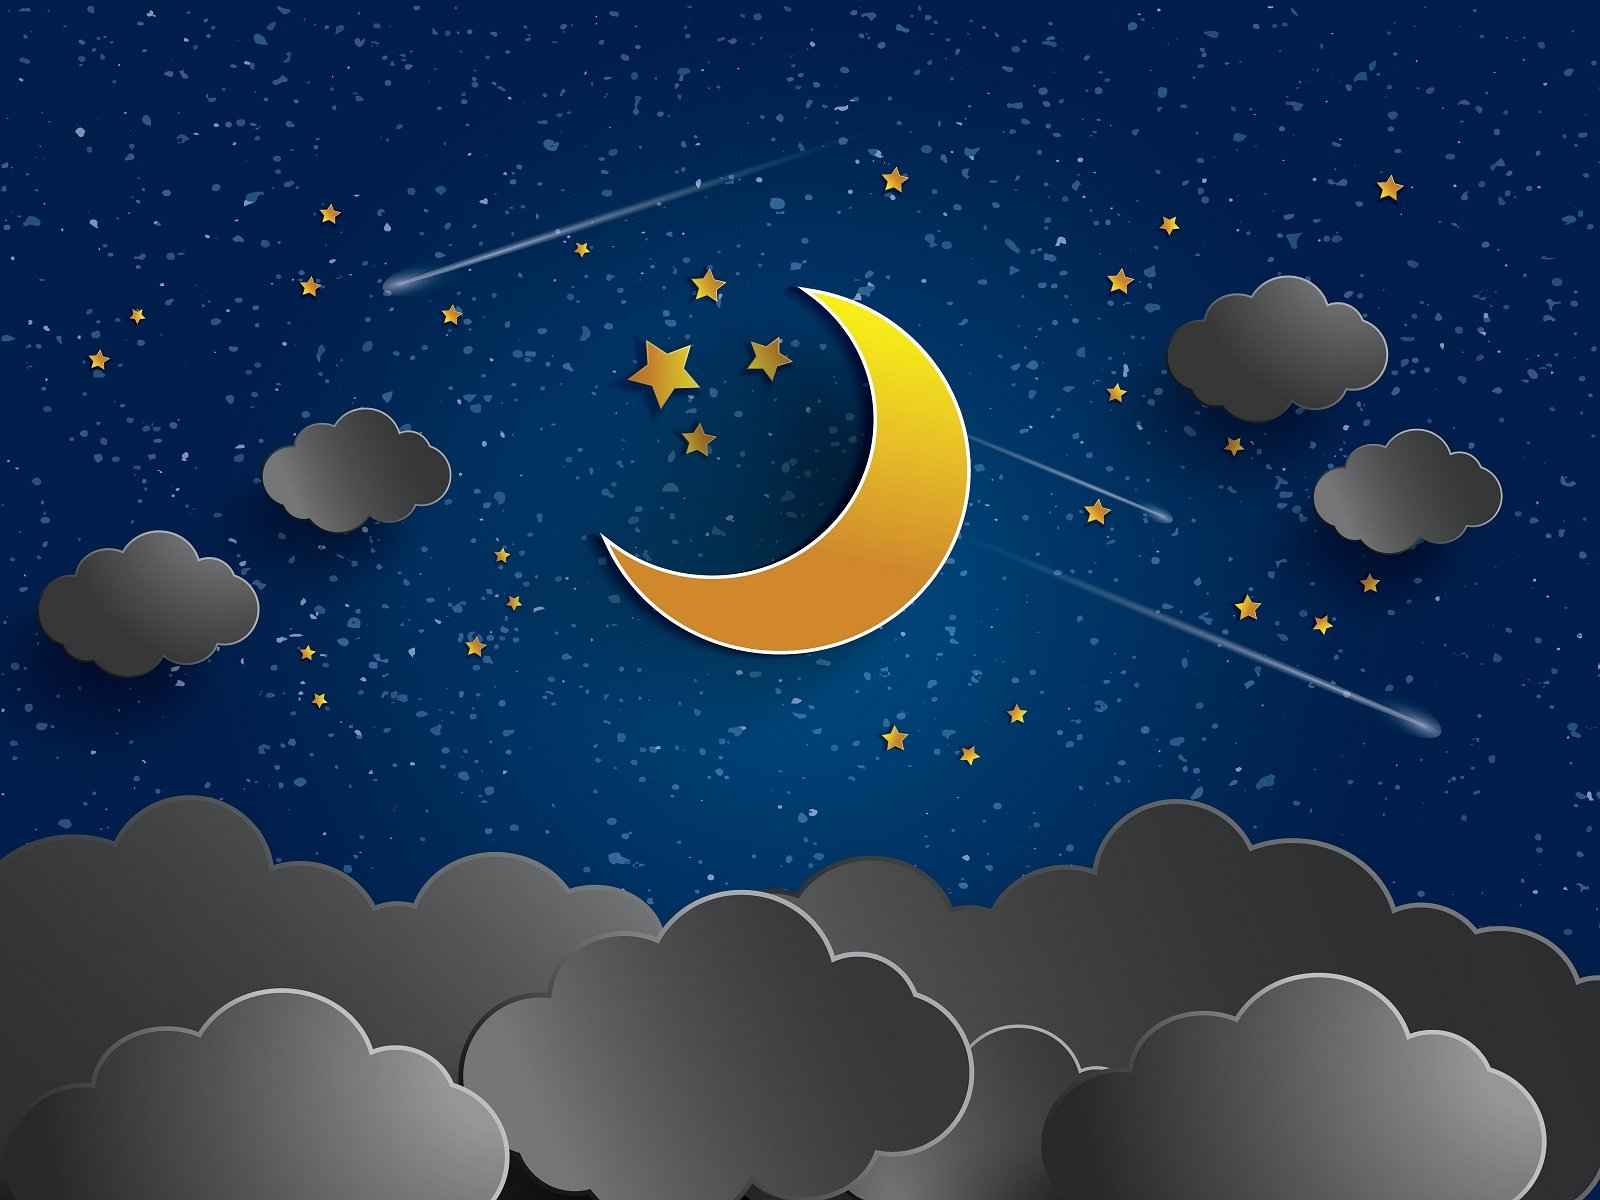 Good night wishes animated sky HD Wallpapers Rocks 1600x1200